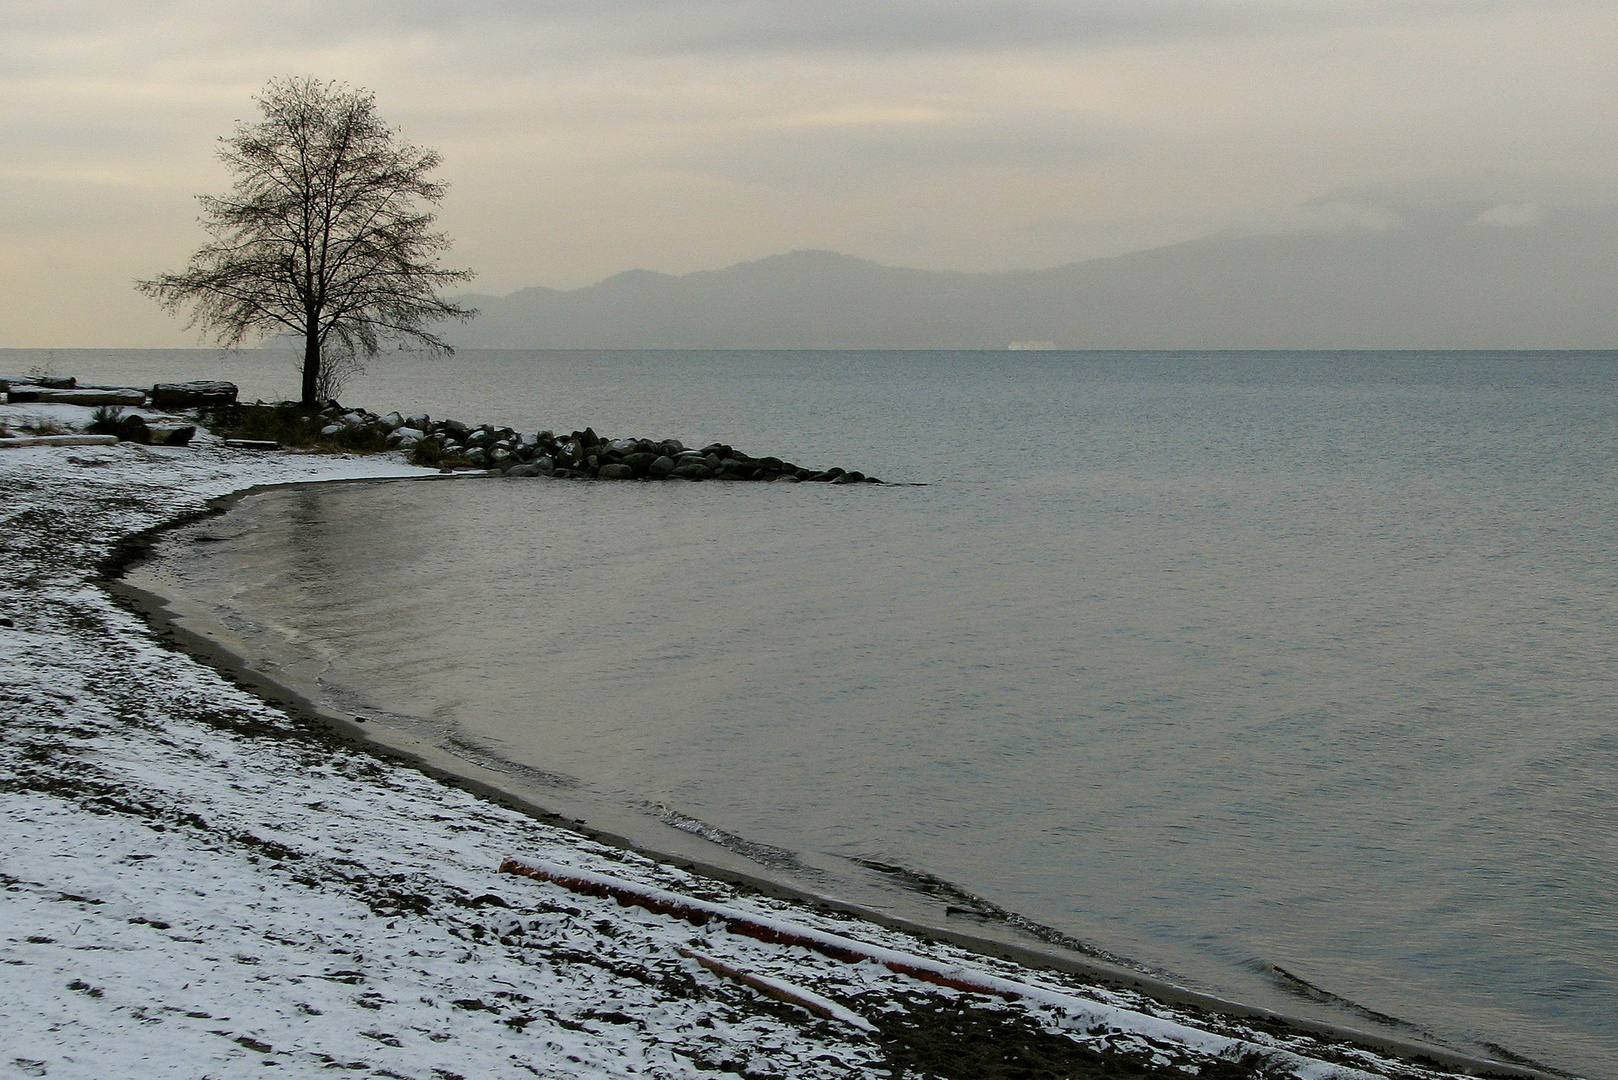 A fine Dusting of Snow (2)